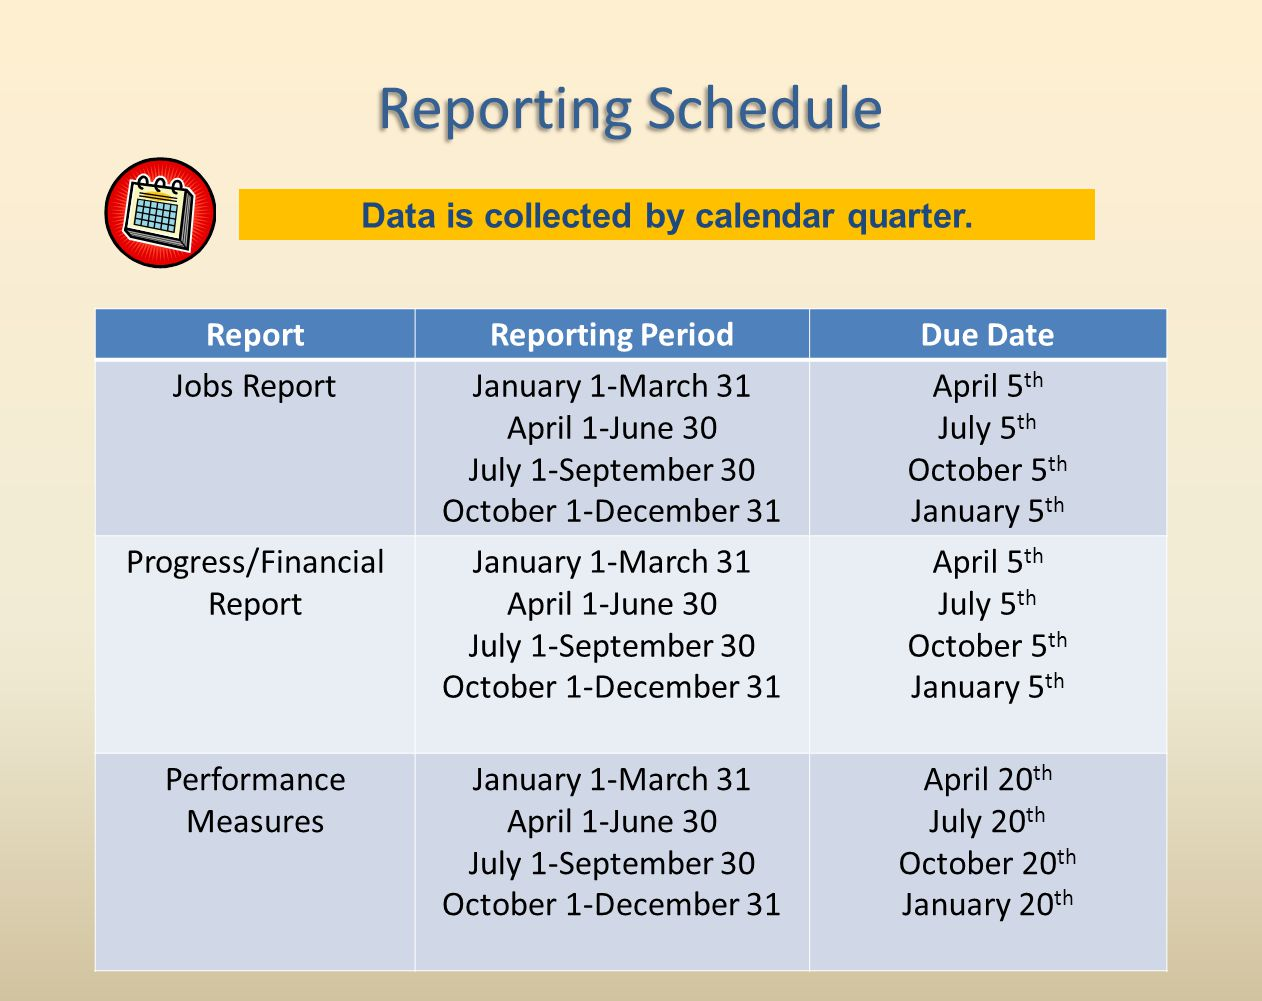 Reporting Schedule ReportReporting PeriodDue Date Jobs ReportJanuary 1-March 31 April 1-June 30 July 1-September 30 October 1-December 31 April 5 th July 5 th October 5 th January 5 th Progress/Financial Report January 1-March 31 April 1-June 30 July 1-September 30 October 1-December 31 April 5 th July 5 th October 5 th January 5 th Performance Measures January 1-March 31 April 1-June 30 July 1-September 30 October 1-December 31 April 20 th July 20 th October 20 th January 20 th Data is collected by calendar quarter.